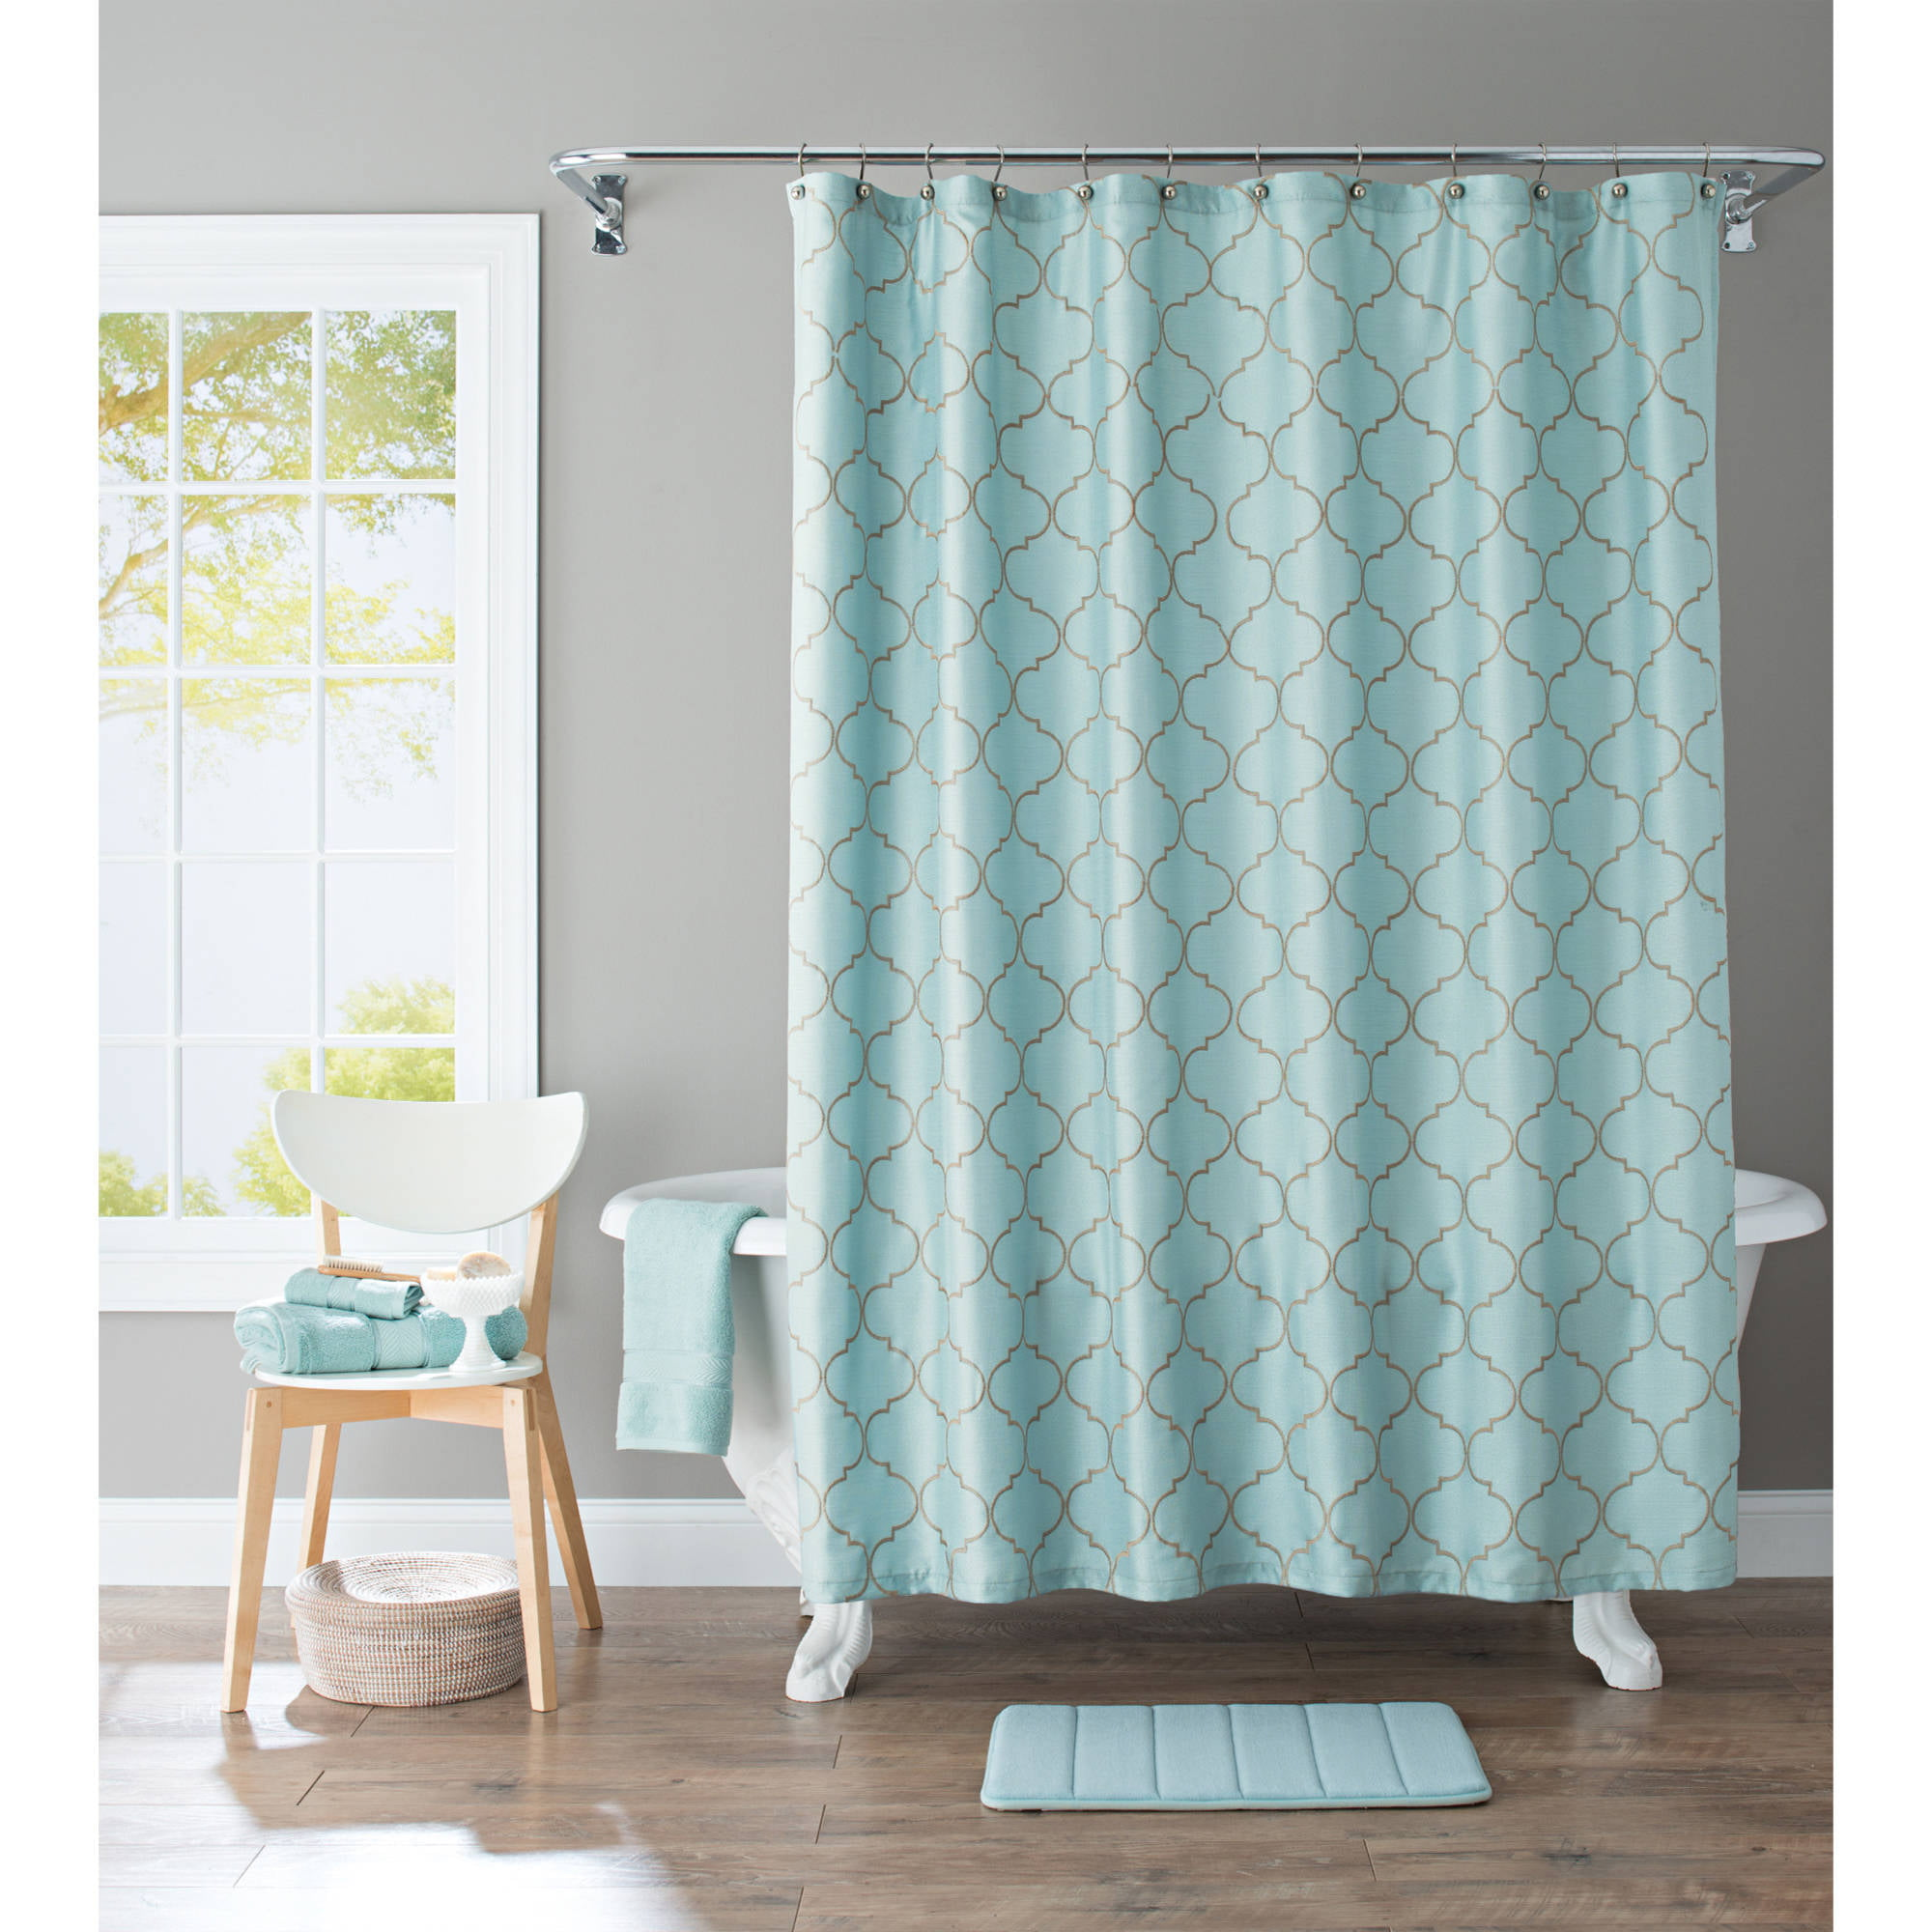 Turquoise And Coral Shower Curtain. Better Homes and Gardens Scalloped Trellis Embroidered Fabric Shower Curtain  Walmart com